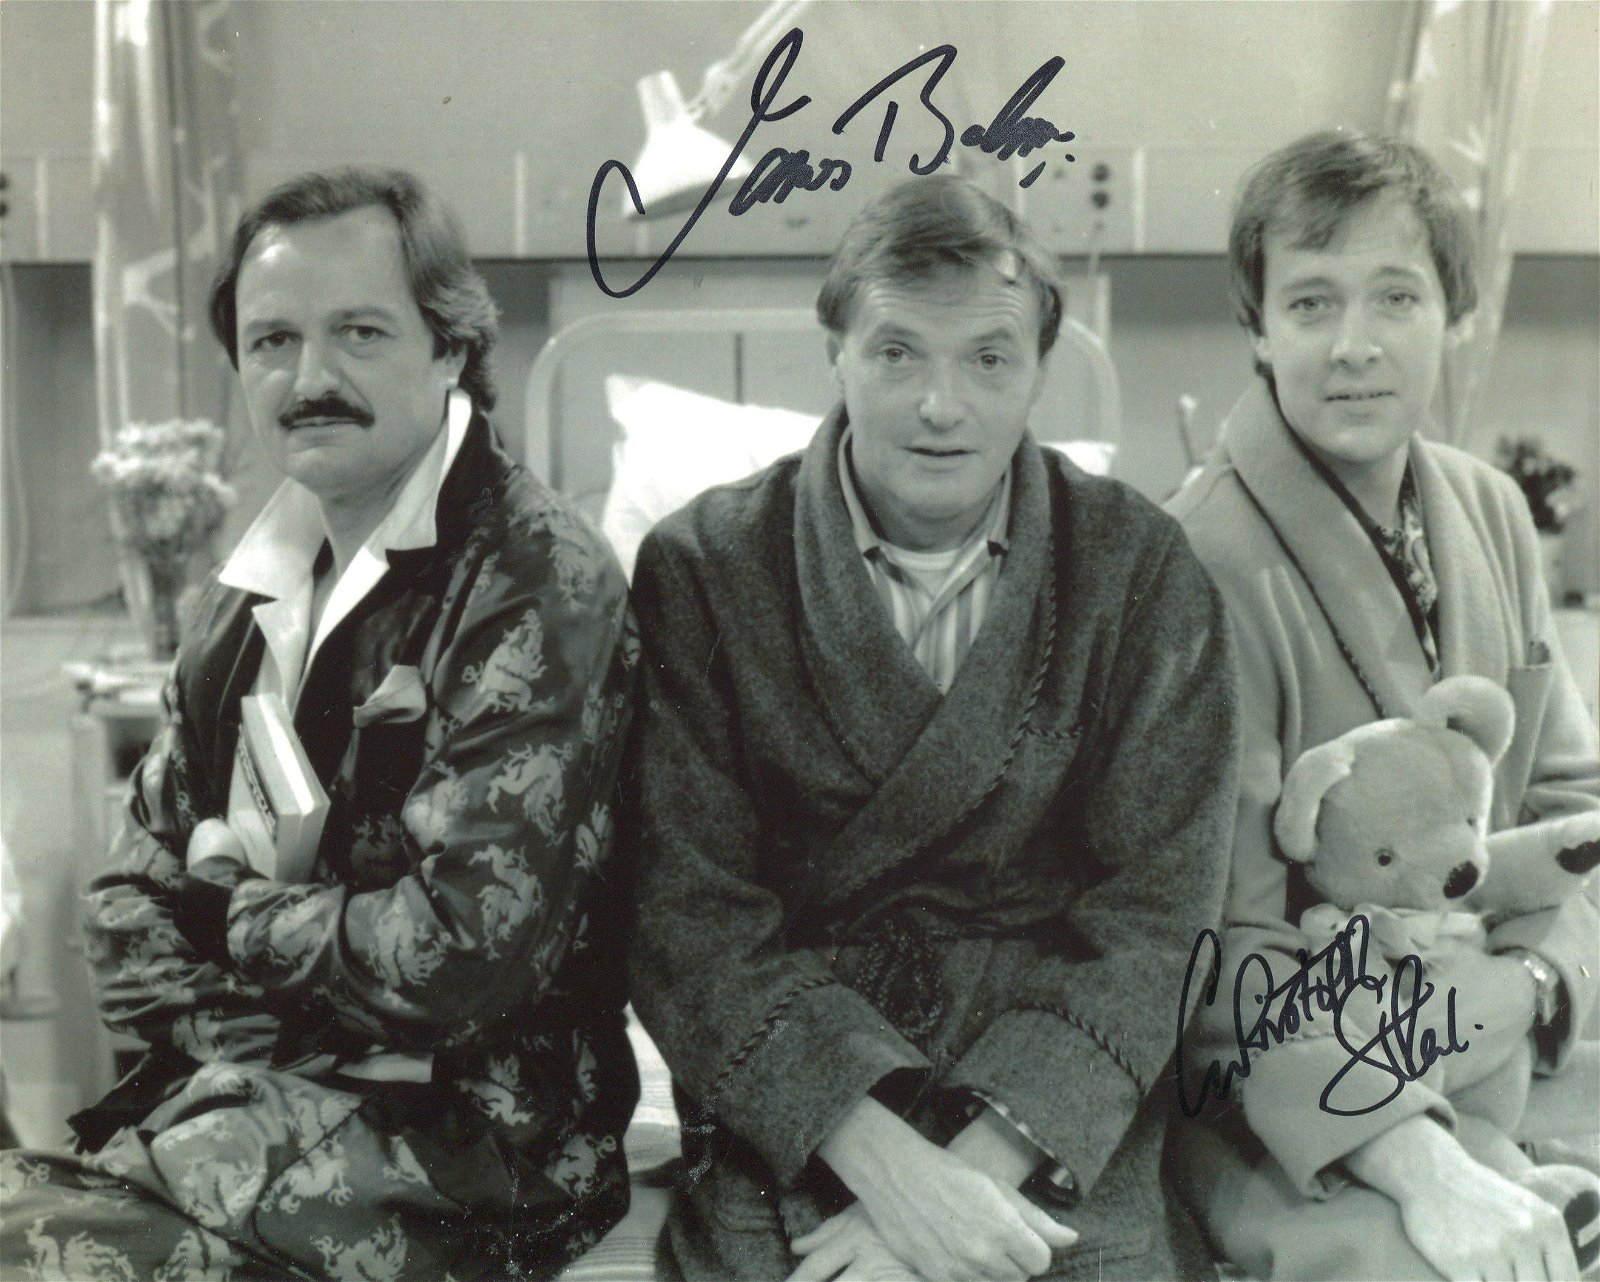 Only When I Laugh cast signed. 8x10 inch photo signed